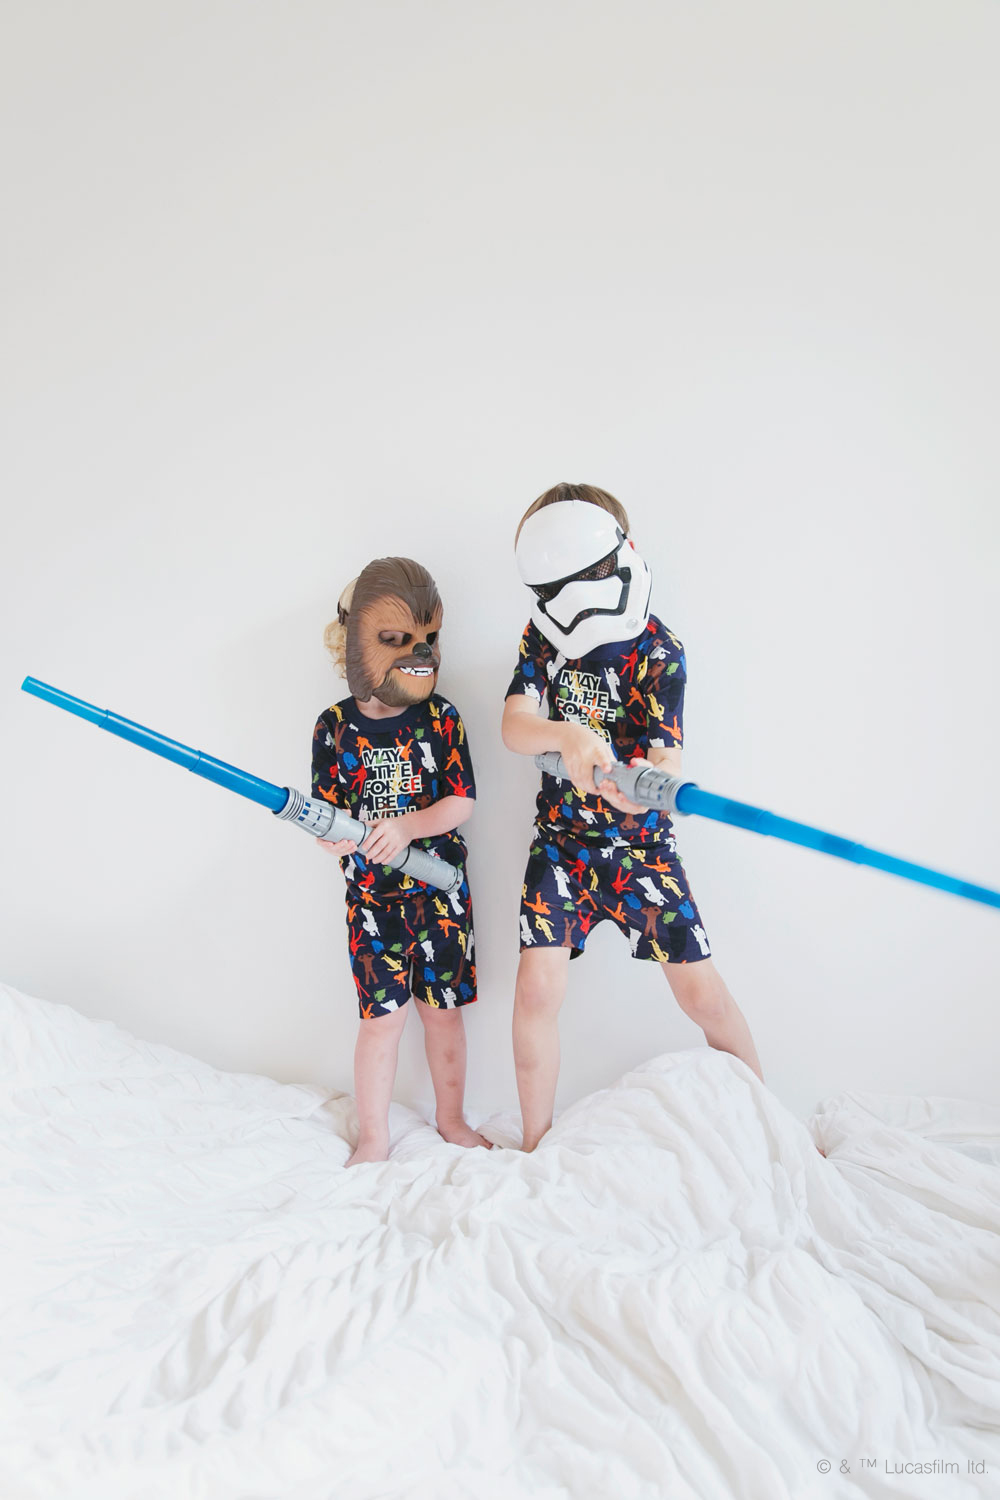 Star-Wars-Family-Pajama-party-ideas copy LTD